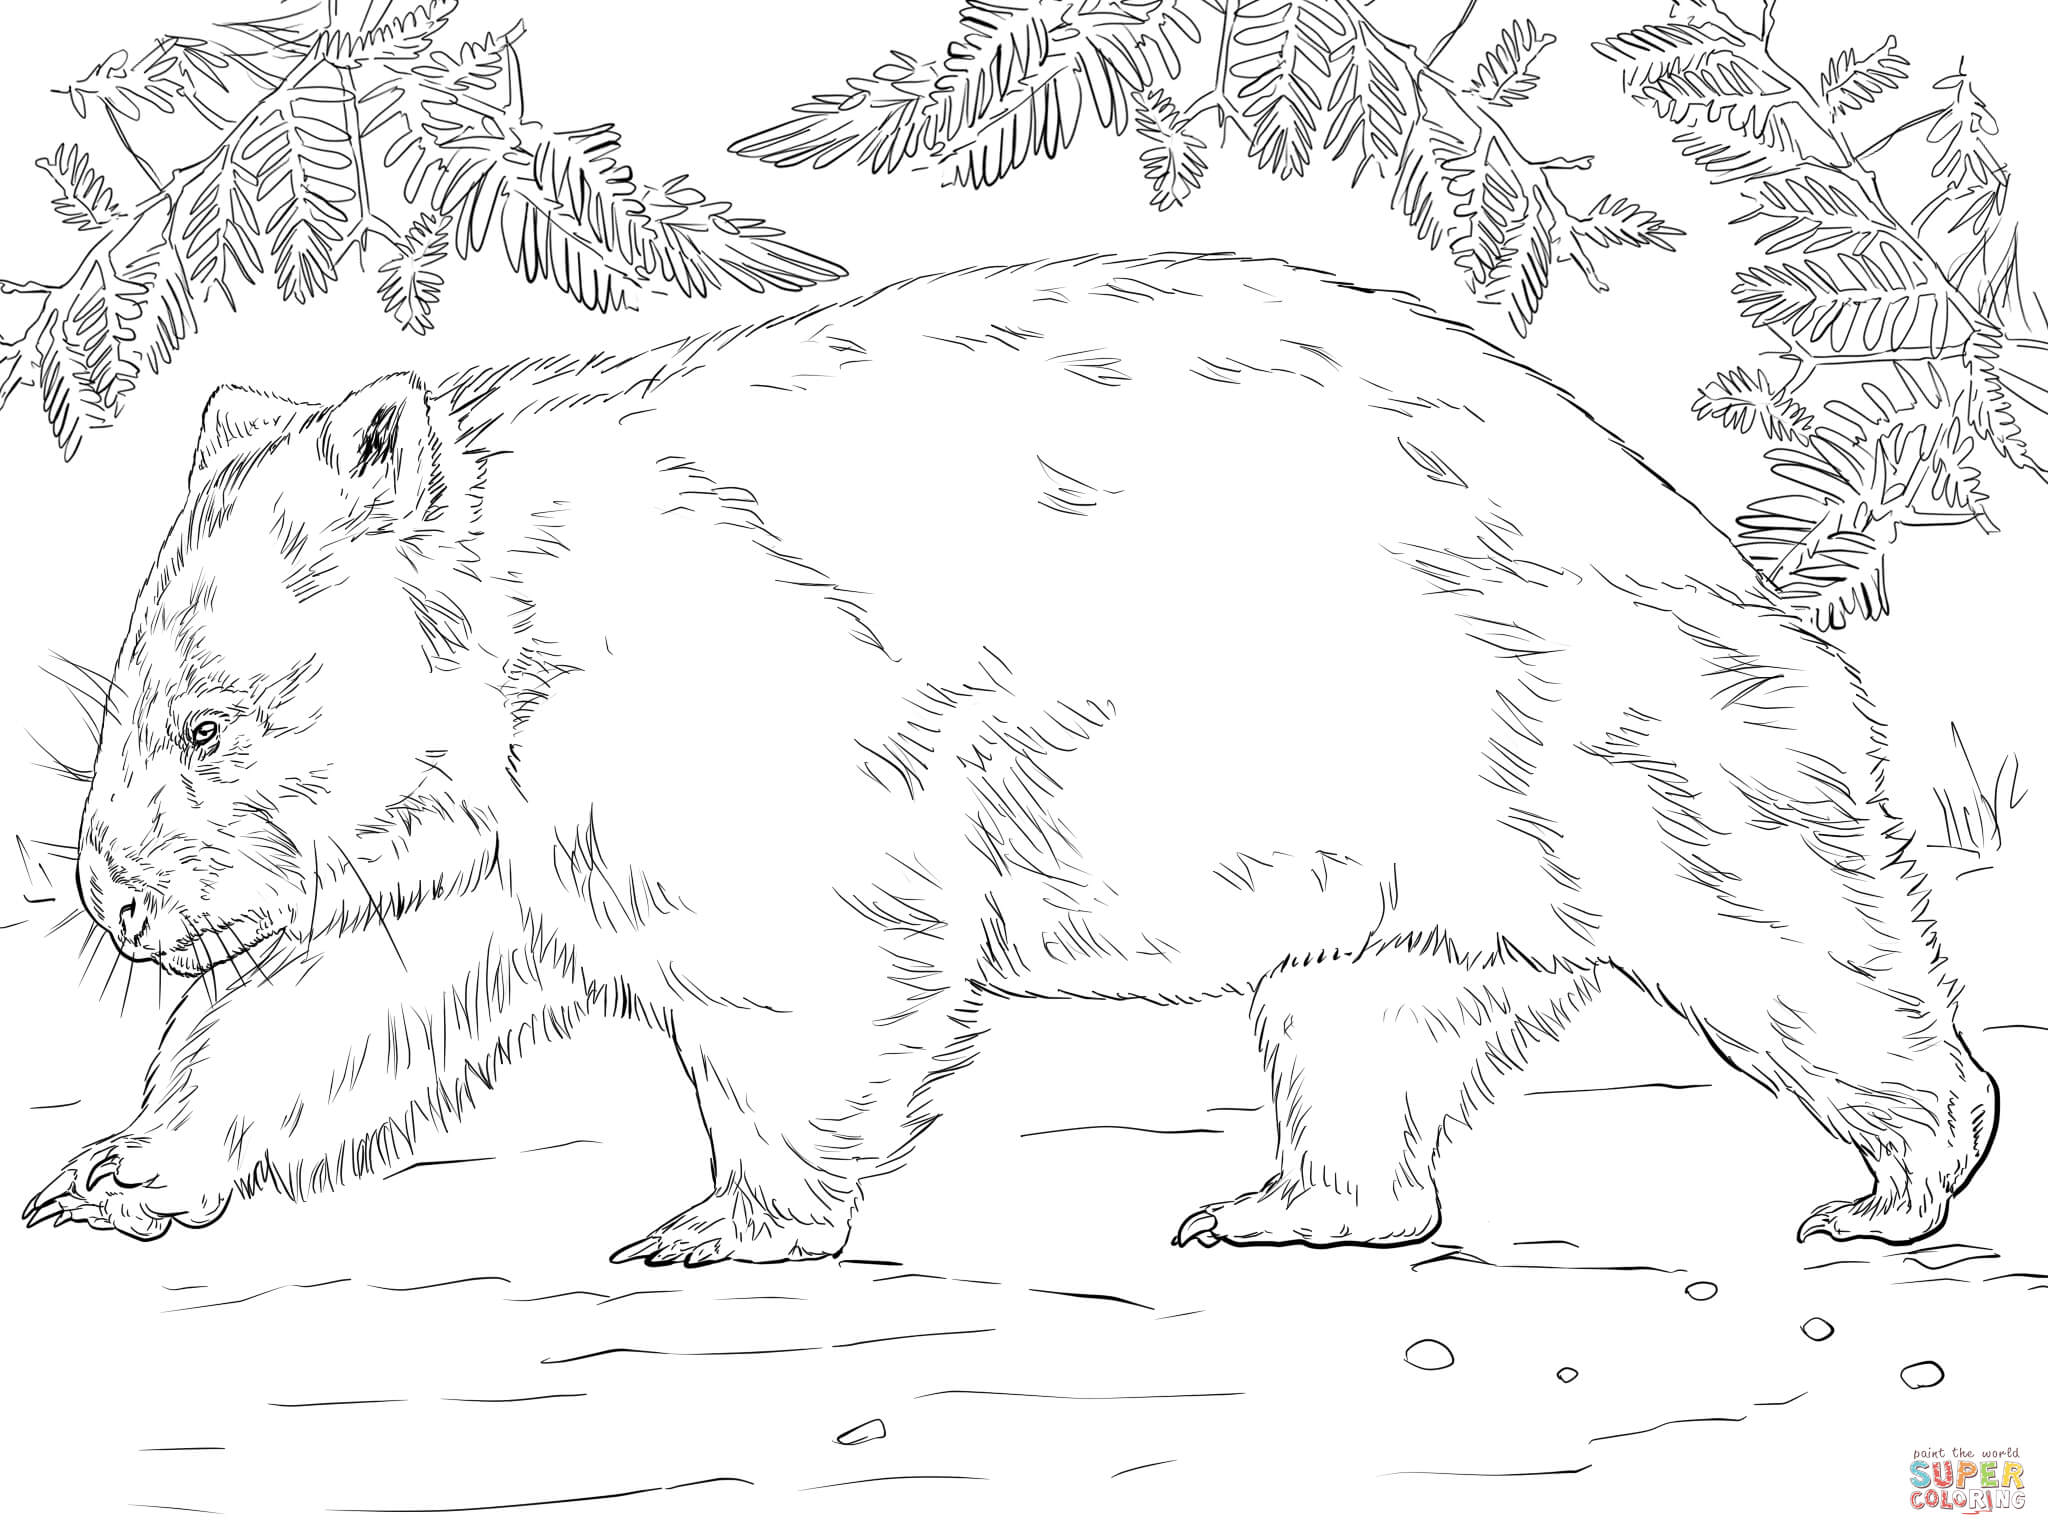 Santa In Australia Coloring Sheets With Wombat Bear Page Free Printable Pages